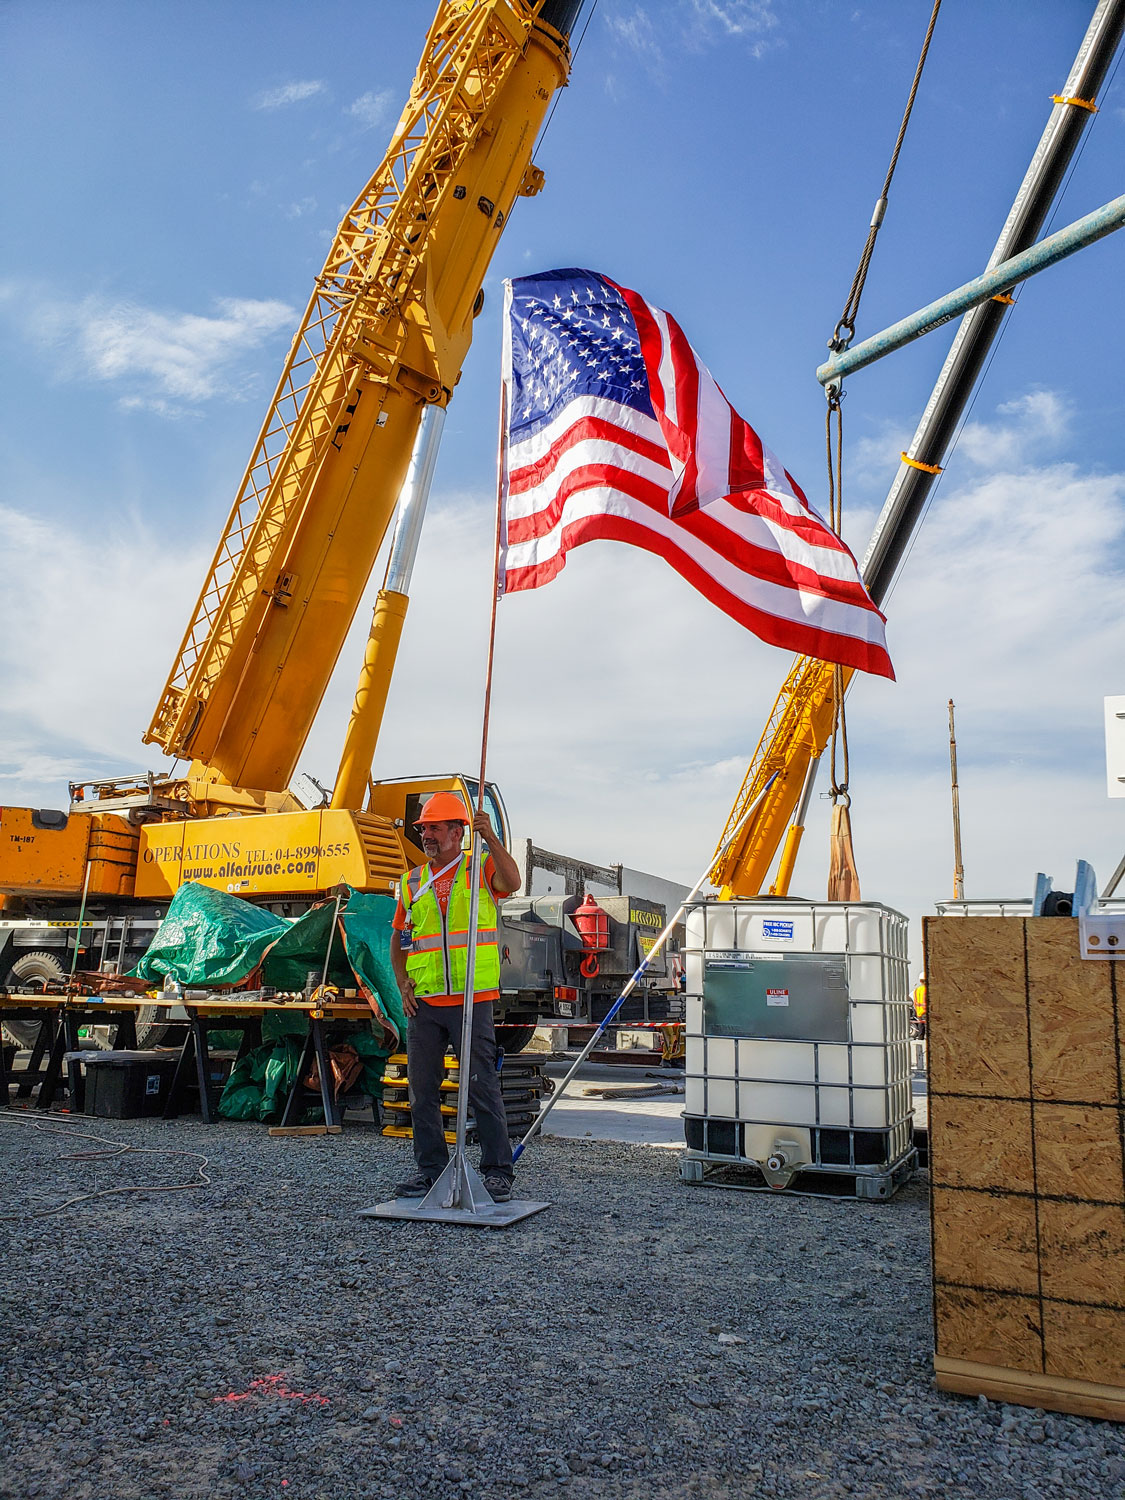 A man stands on gravel holding a flag pole with an American flag attached. Cranes stand behind him on an active construction site.